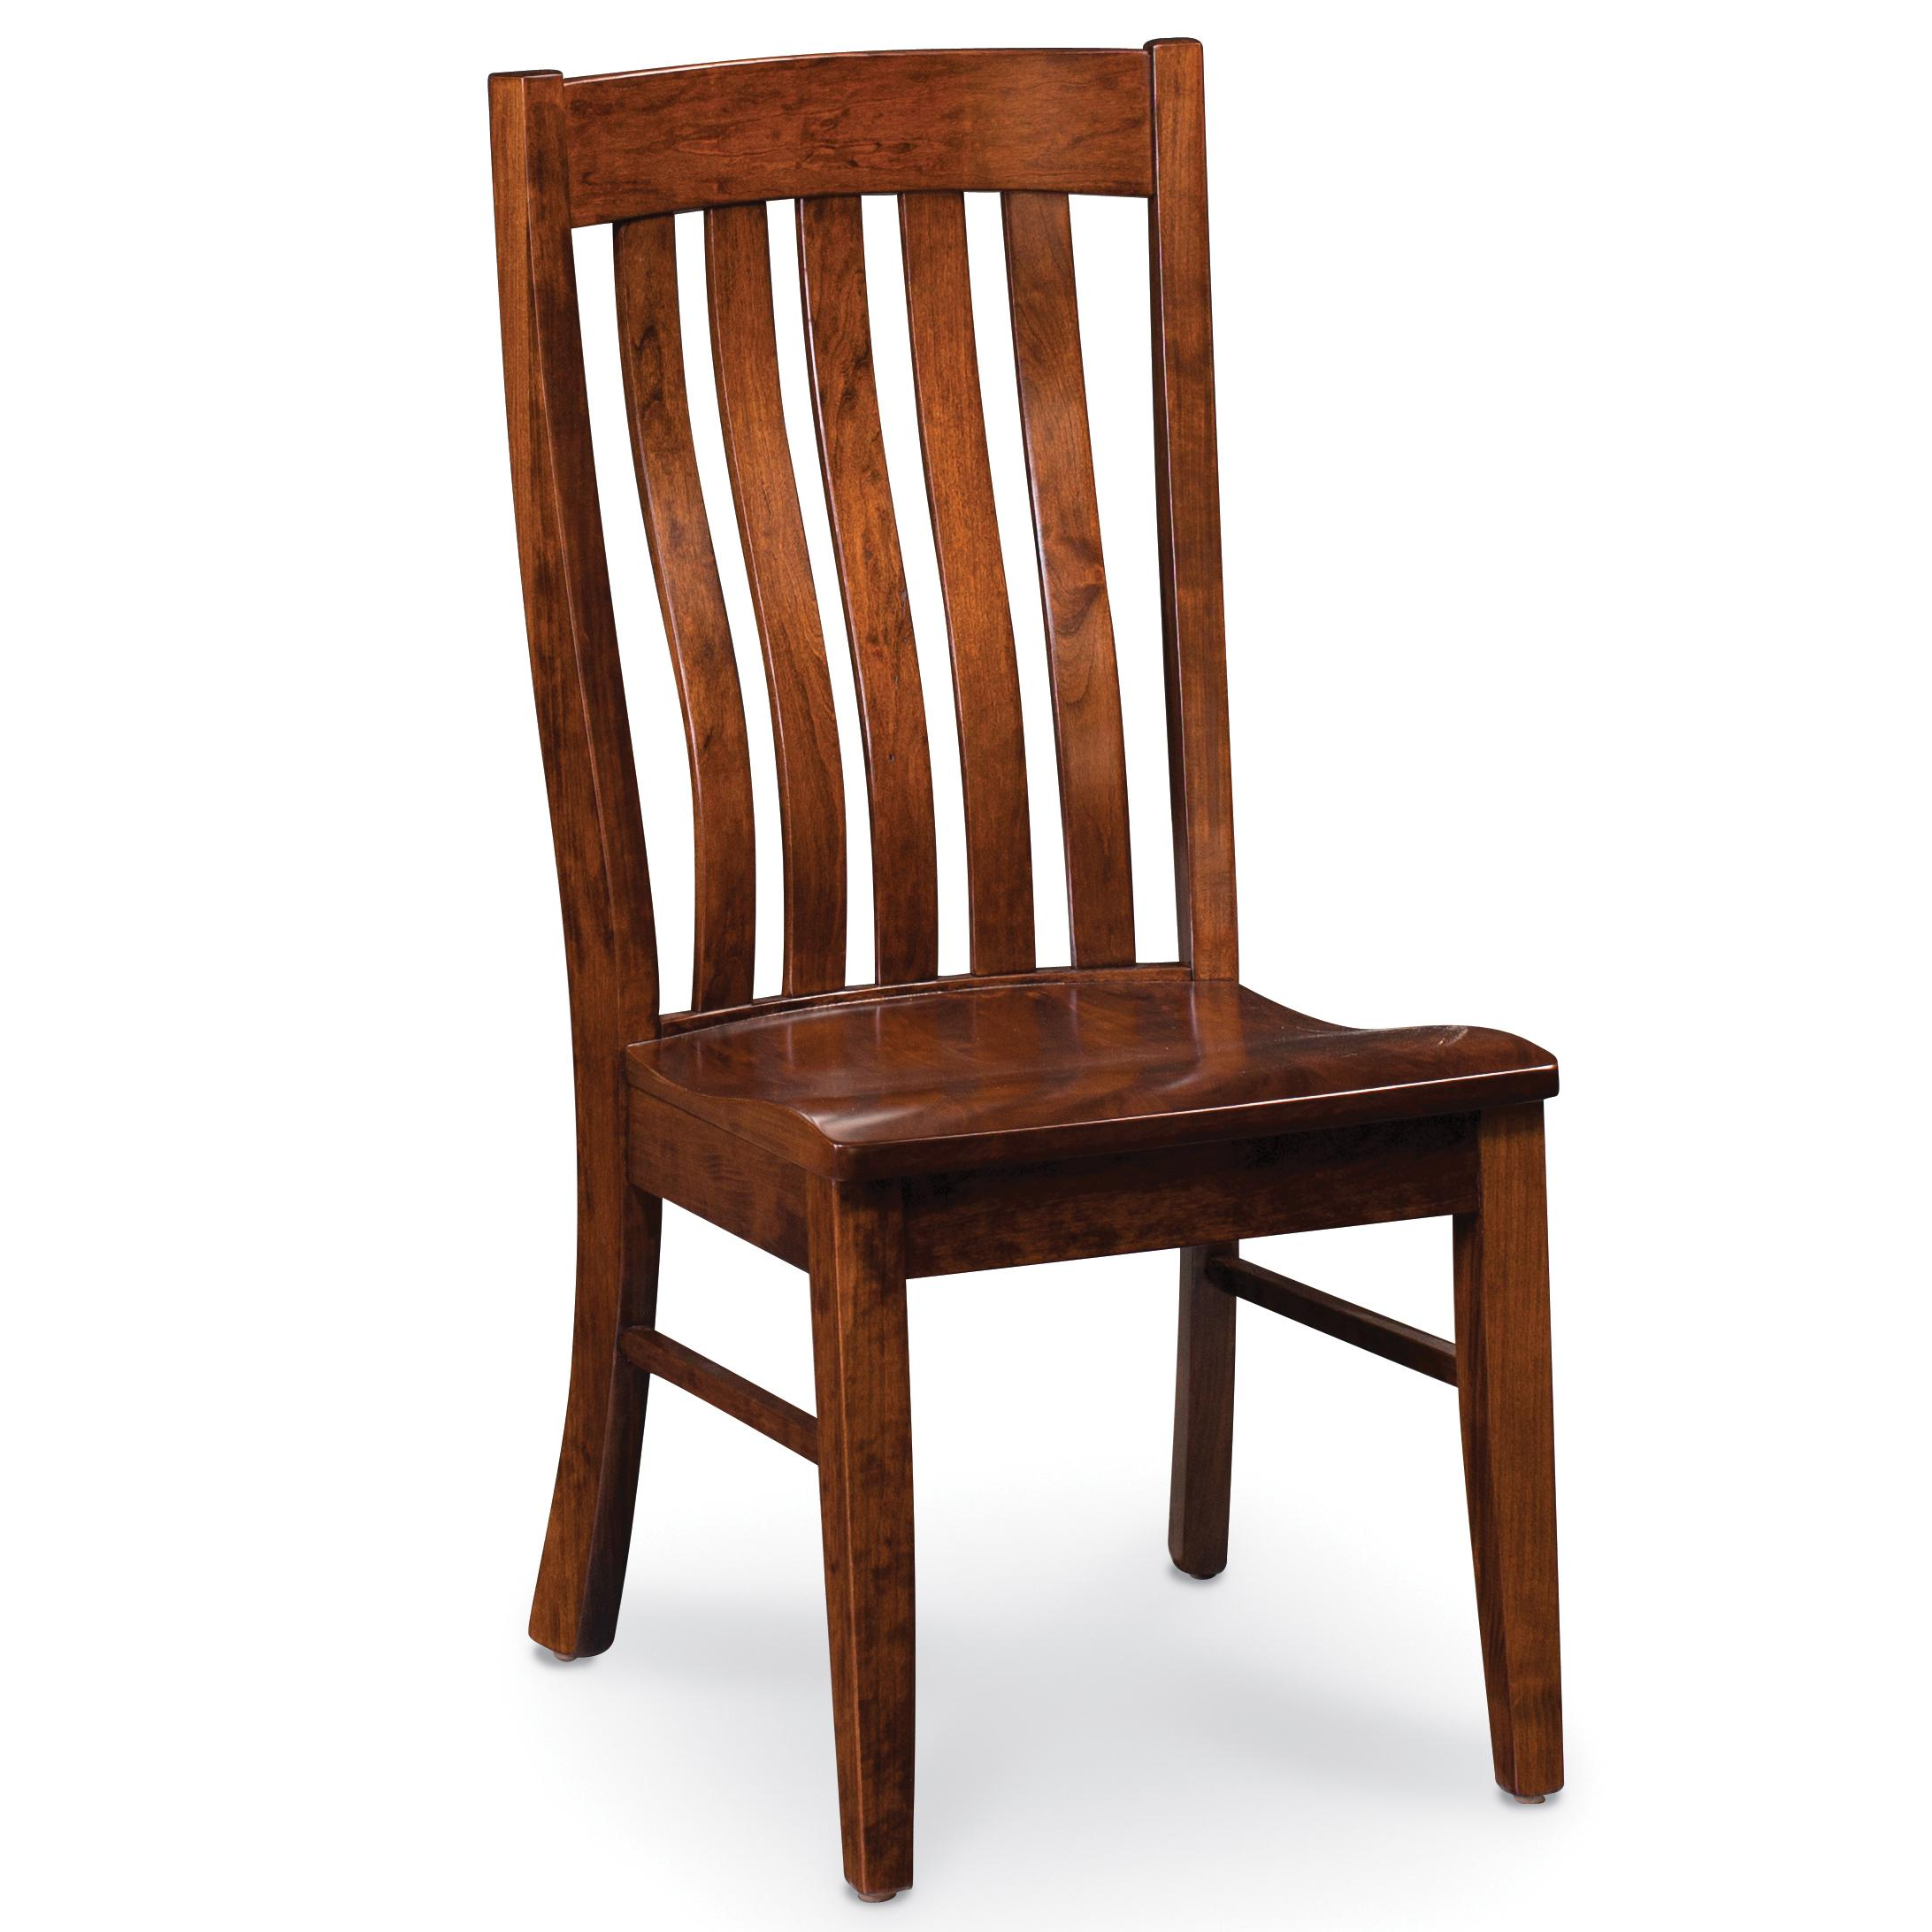 Simply Amish Chairs Ecbrd 02a W Bradford Side Chair With Slat Back Becker Furniture World